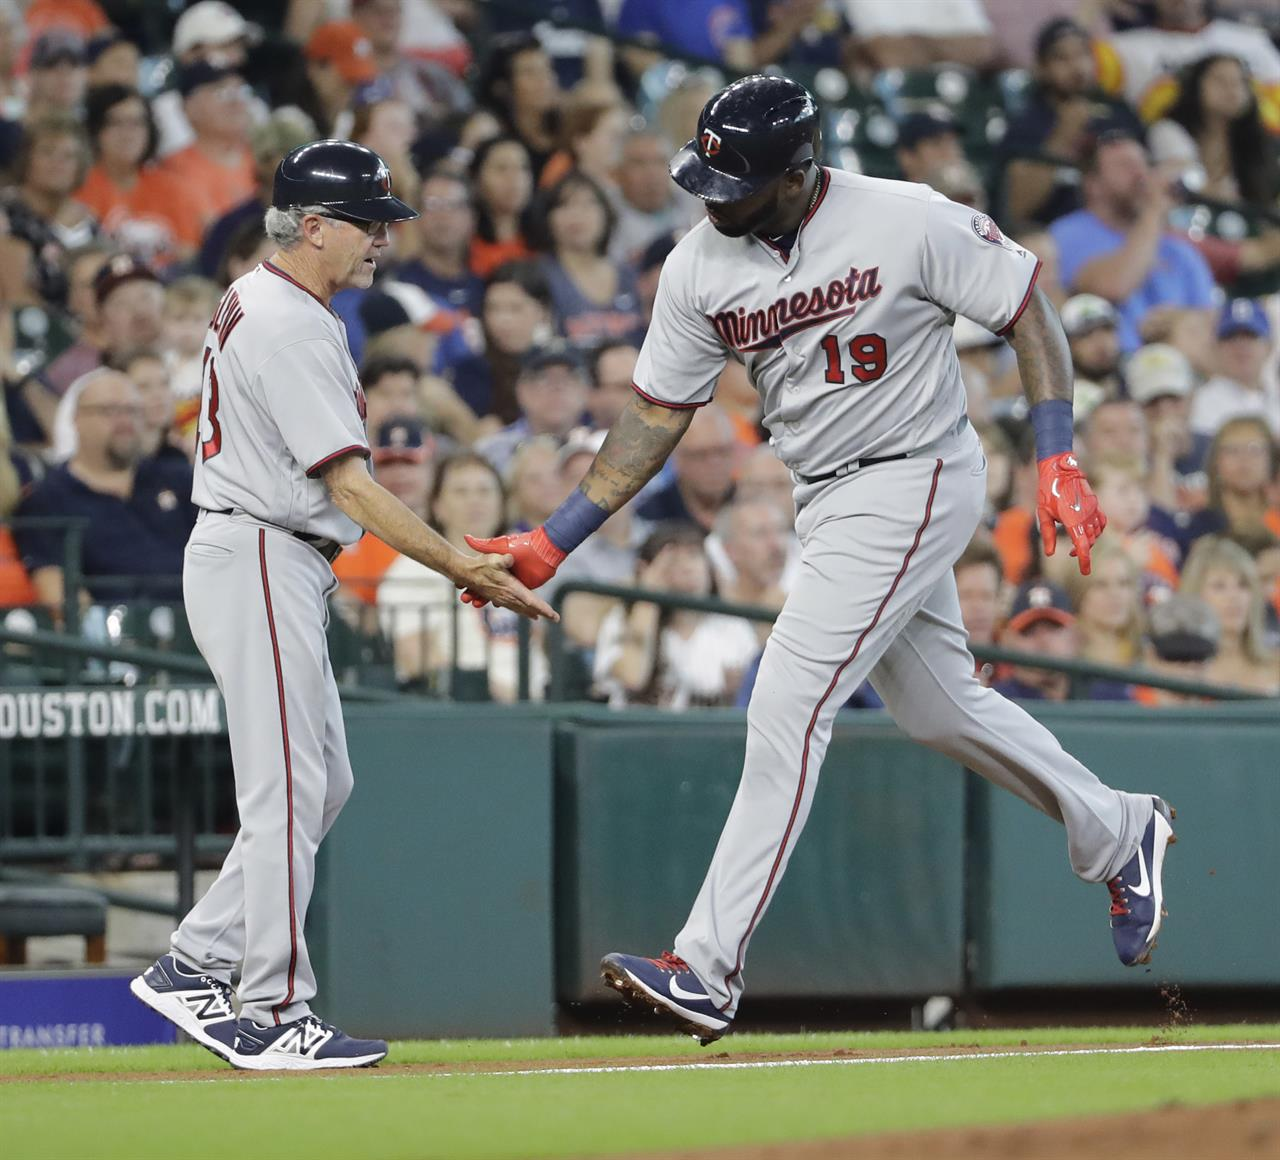 Fiers Strikes Out 11 As Astros Beat Twins 5-3